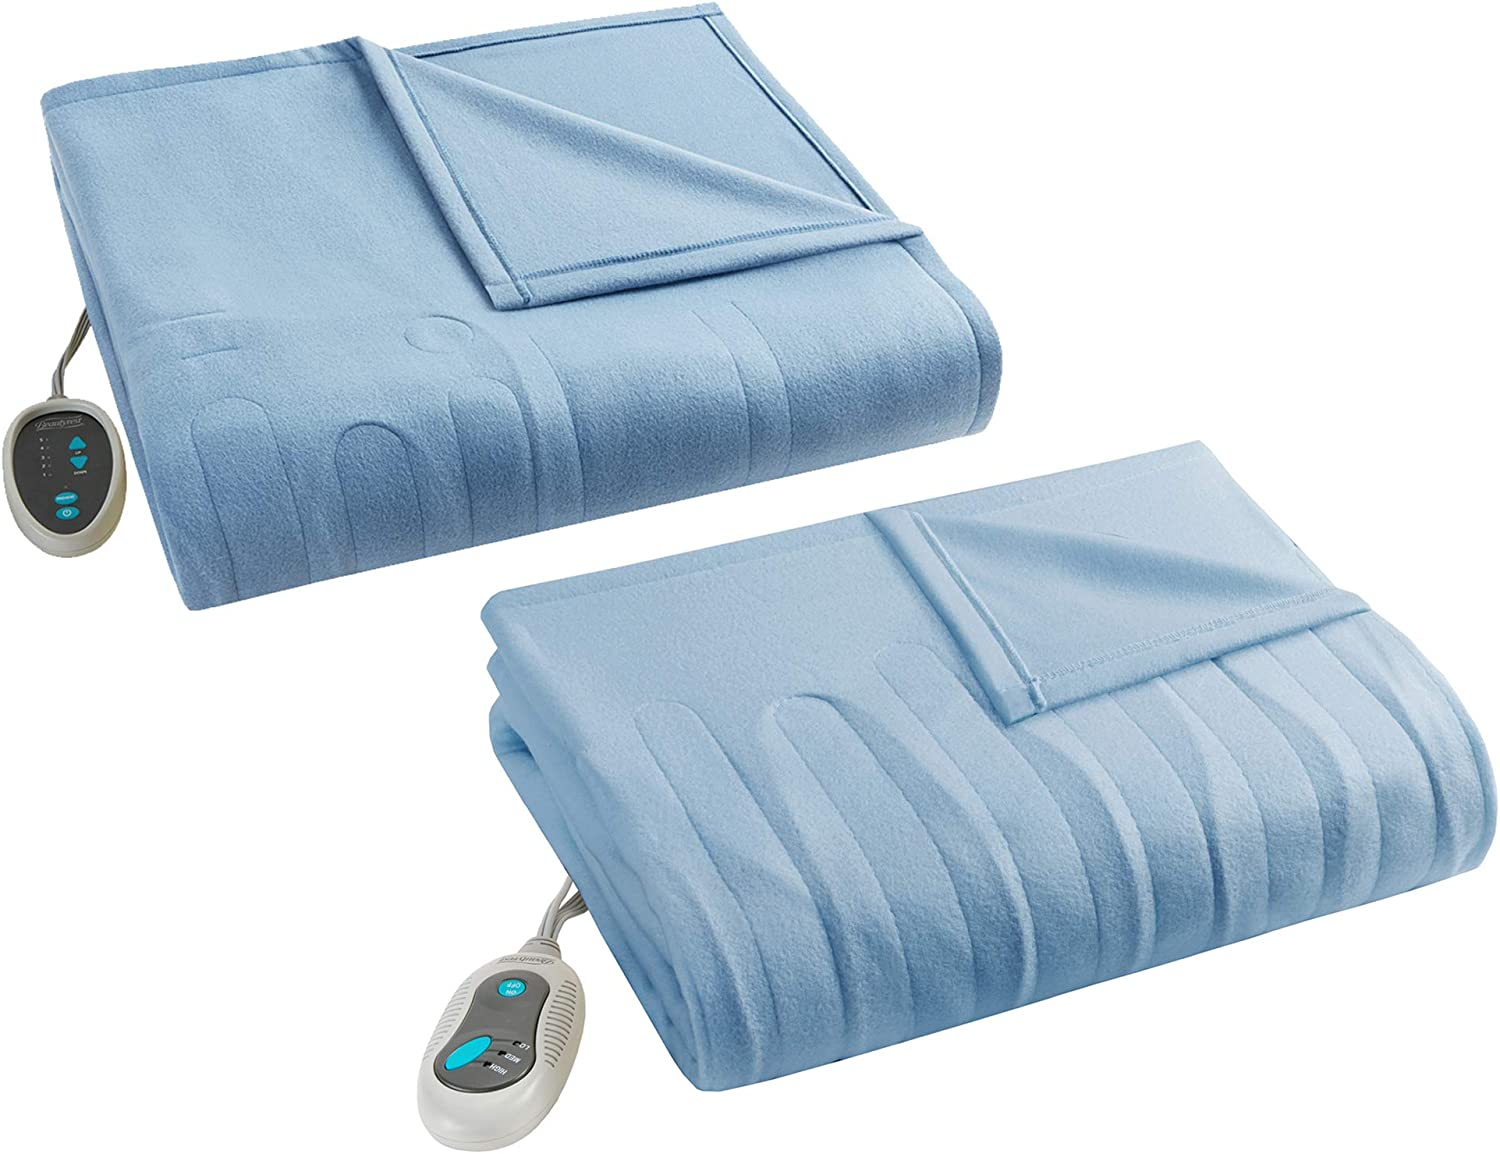 """Beautyrest - Heated Fleece Blanket and Throw Combo Set - Blue - Twin Size Blanket 62"""" x 84"""" + Throw 50"""" x 60"""" - with 2 Heat-Regulating Controllers"""